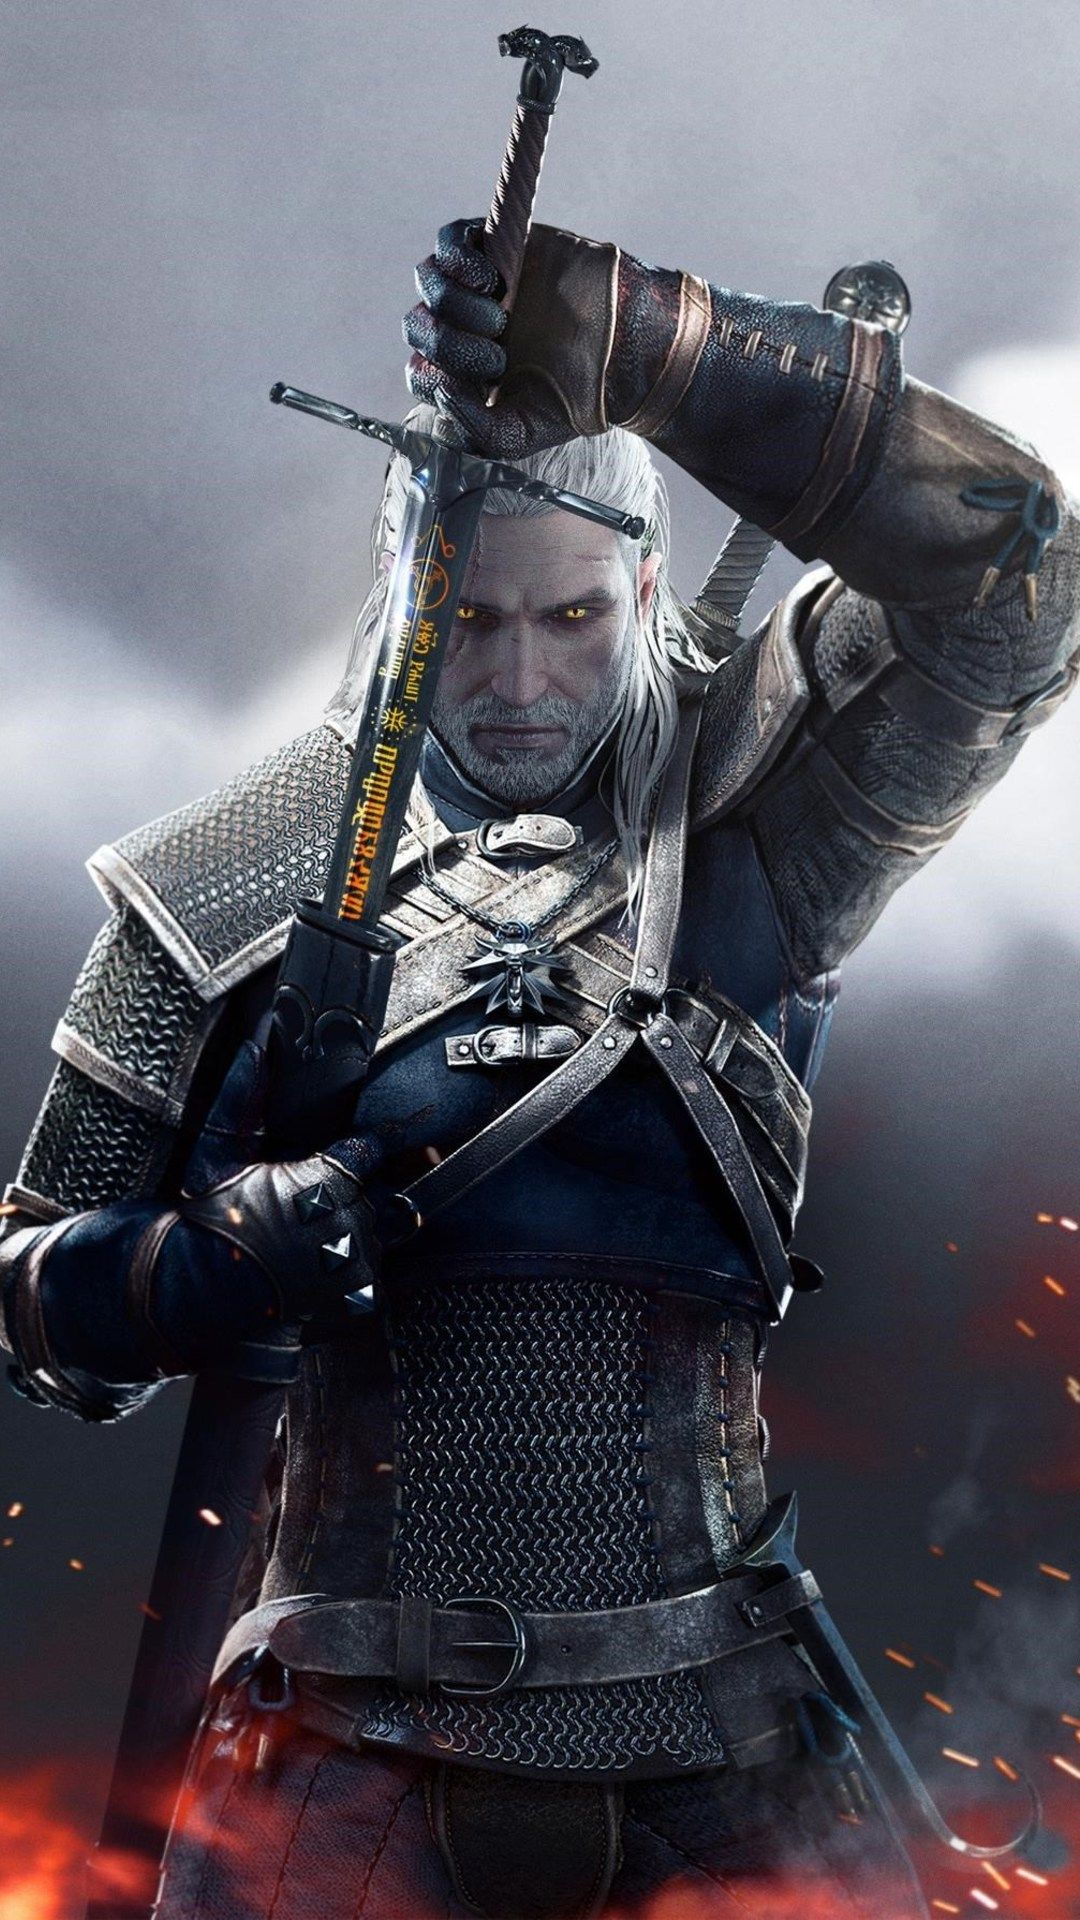 The Witcher 3 Wallpapers Hupages Download Iphone Wallpapers The Witcher Game The Witcher The Witcher 3